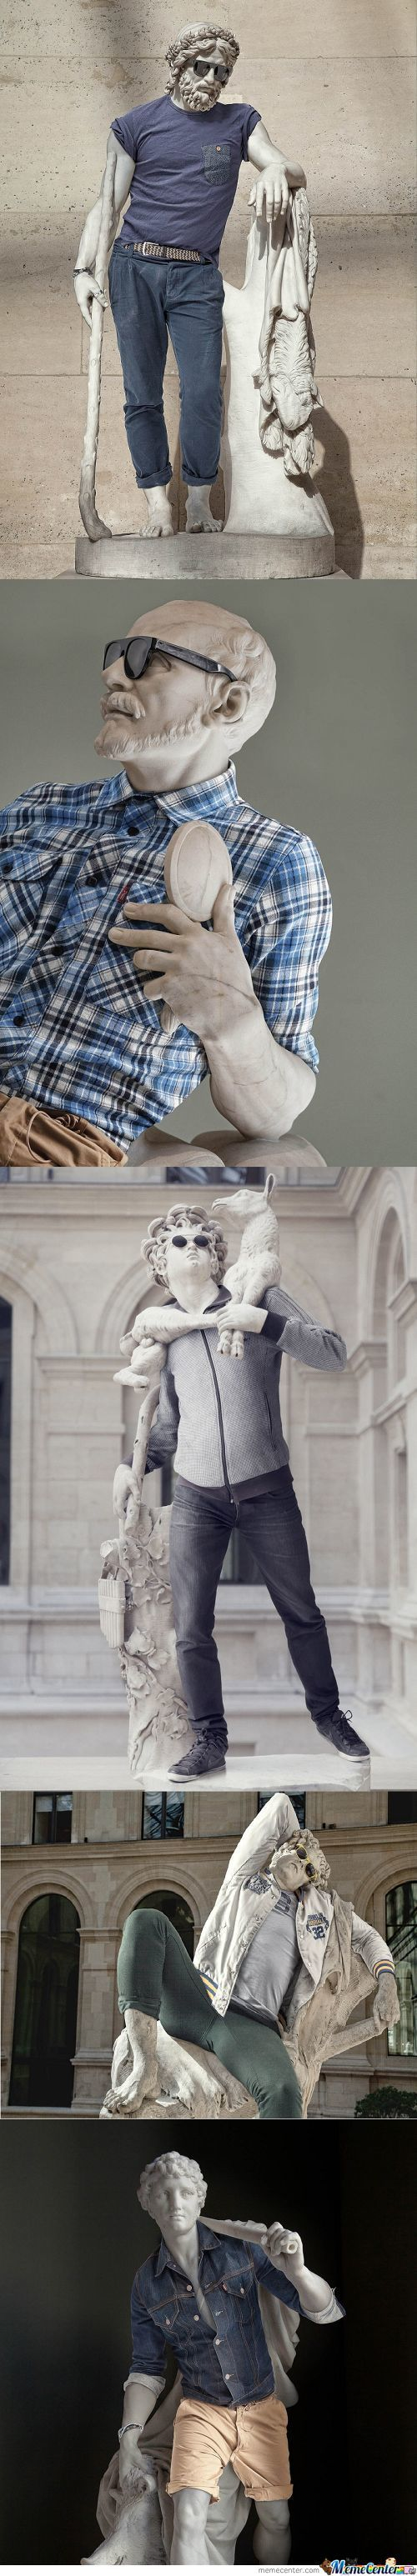 Classical Sculptures Dressed As Hipsters